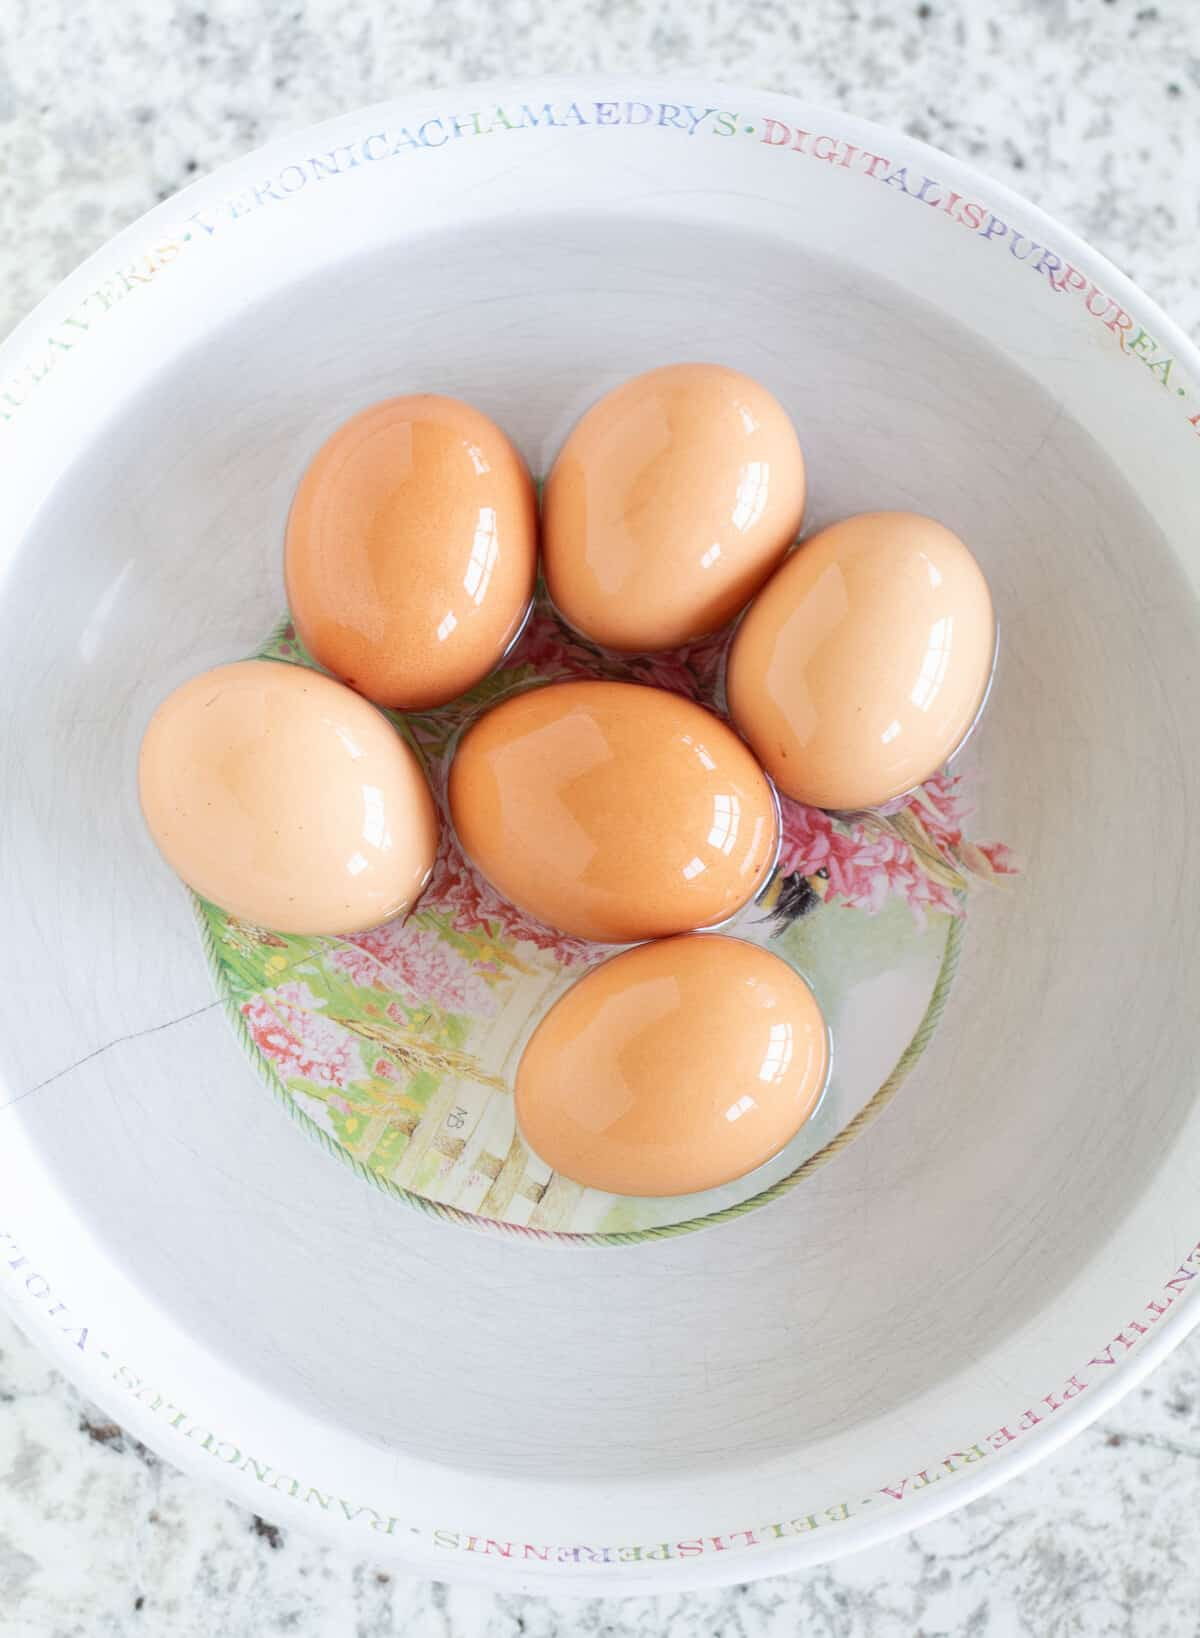 eggs in a bowl of warm water